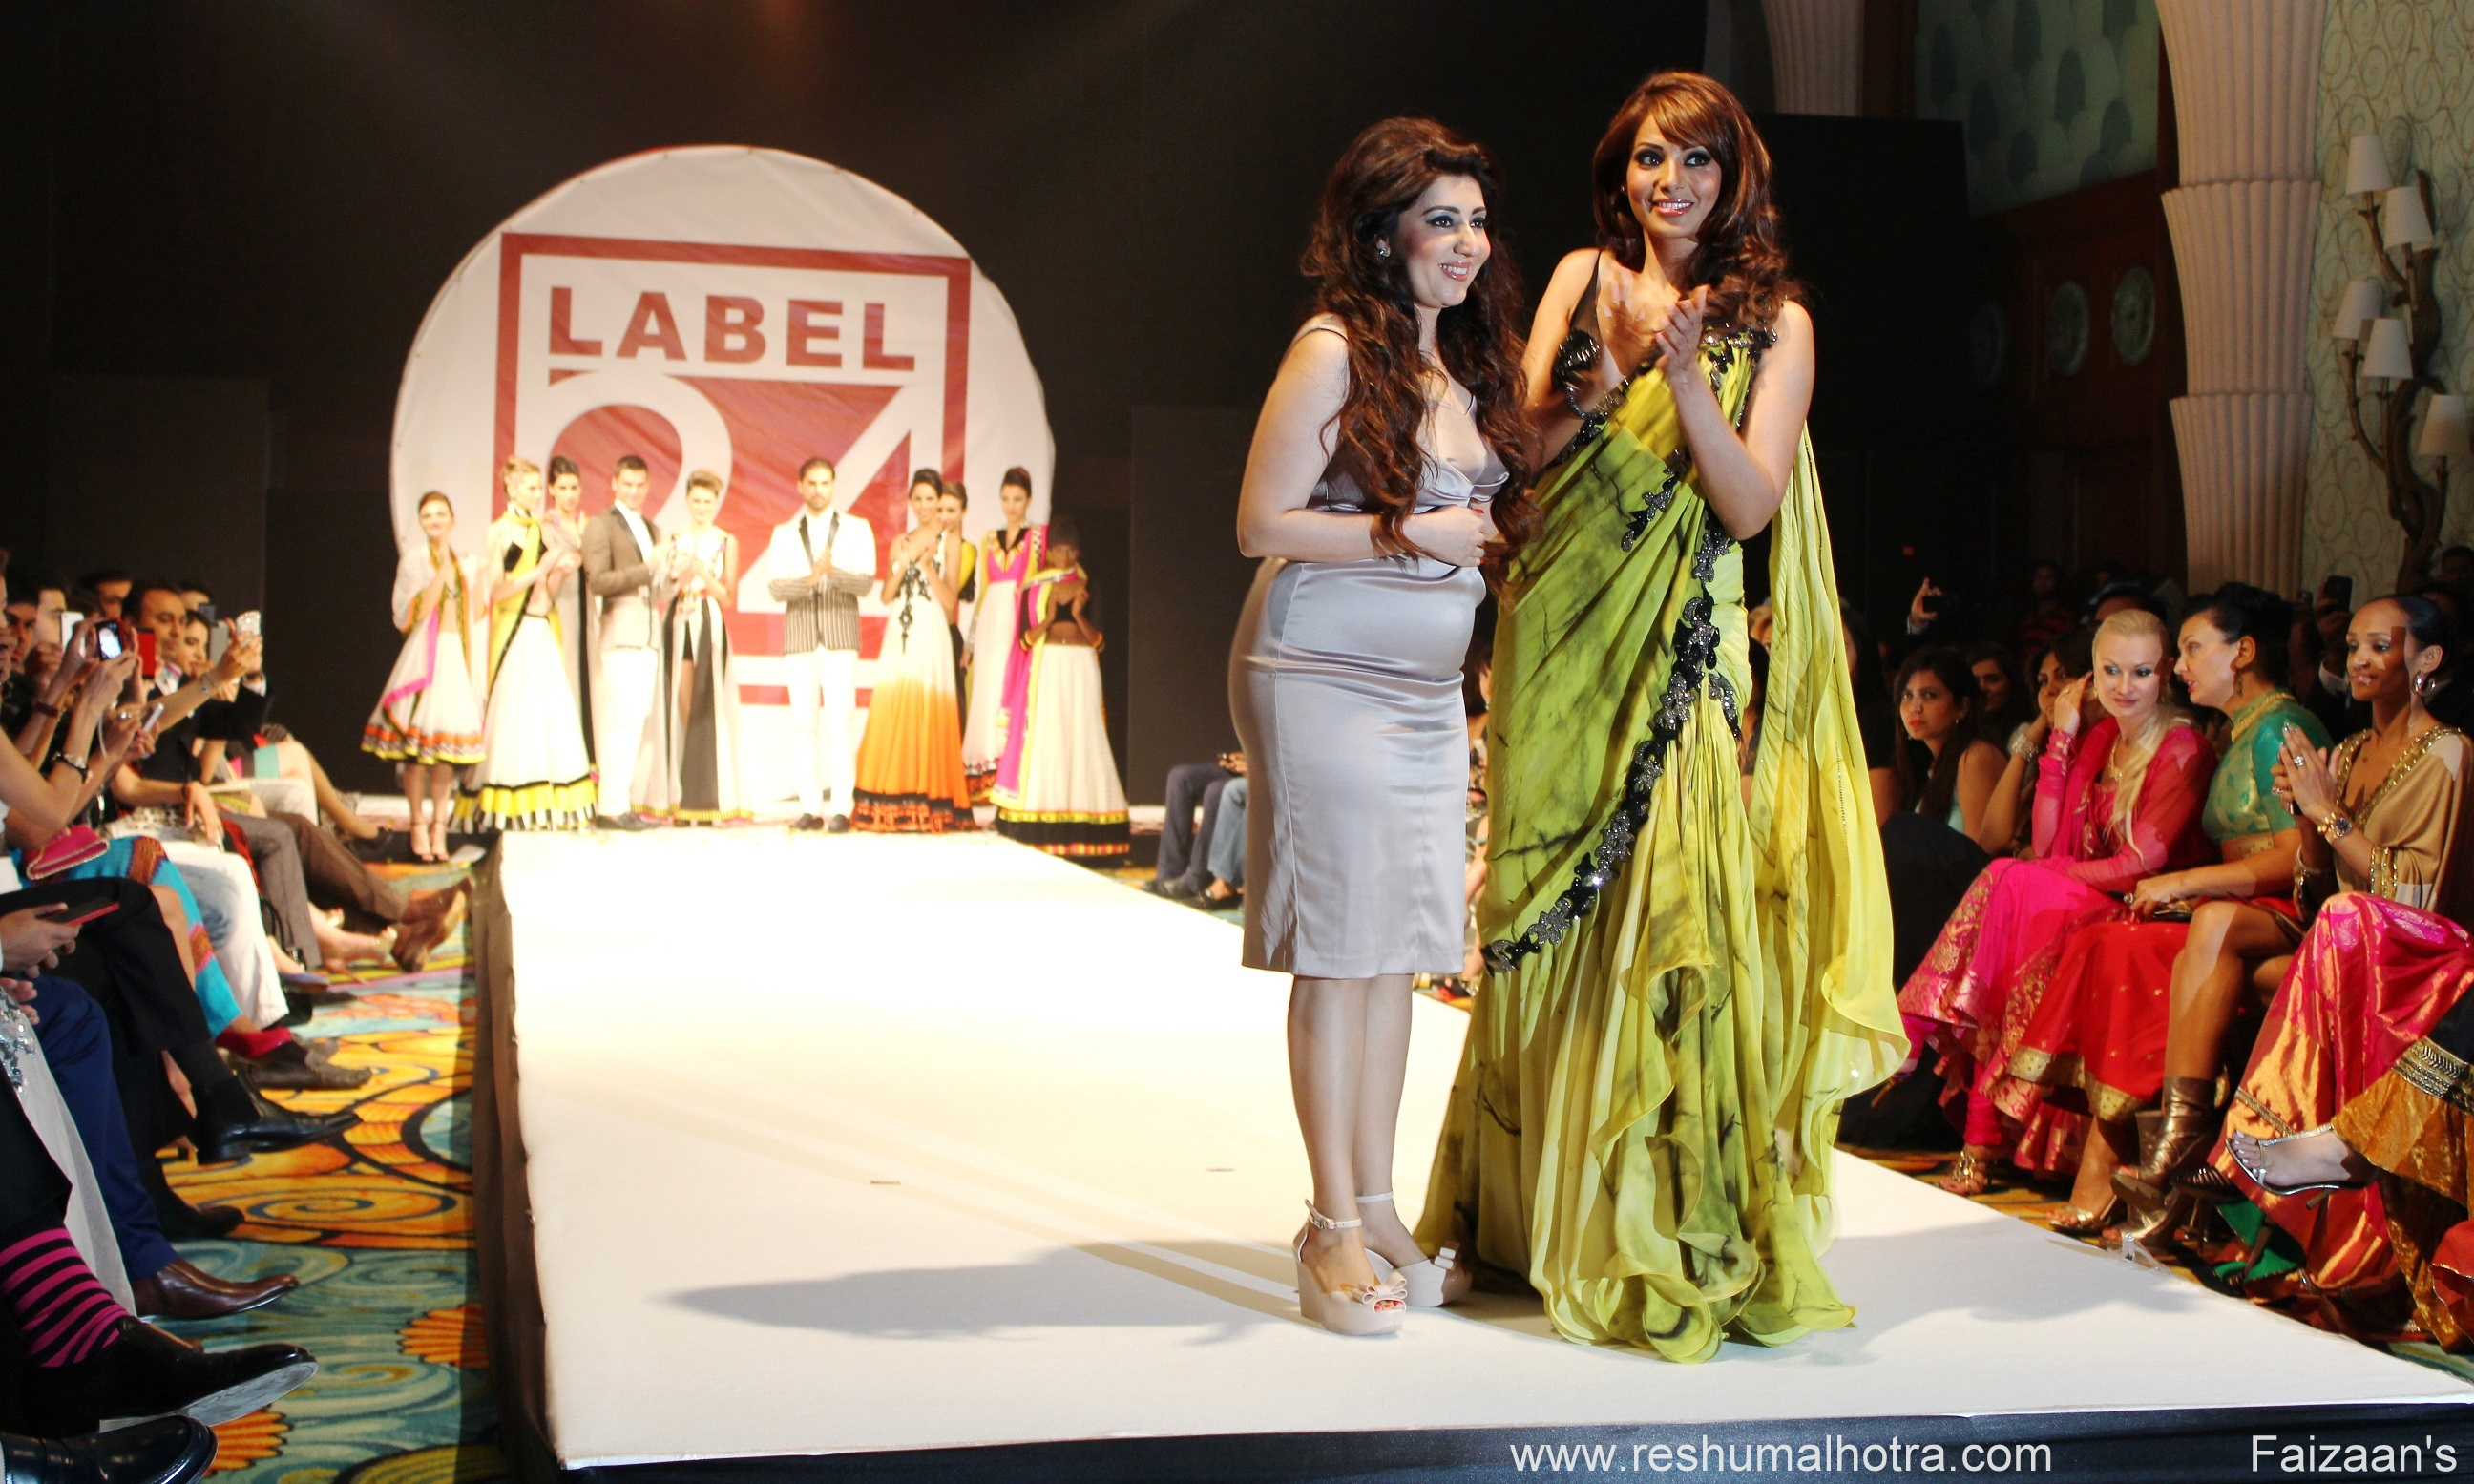 Archana Kochhar Fashion Show-Label24, Makeup fo Archana  by Reshu Malhotra /Dubai